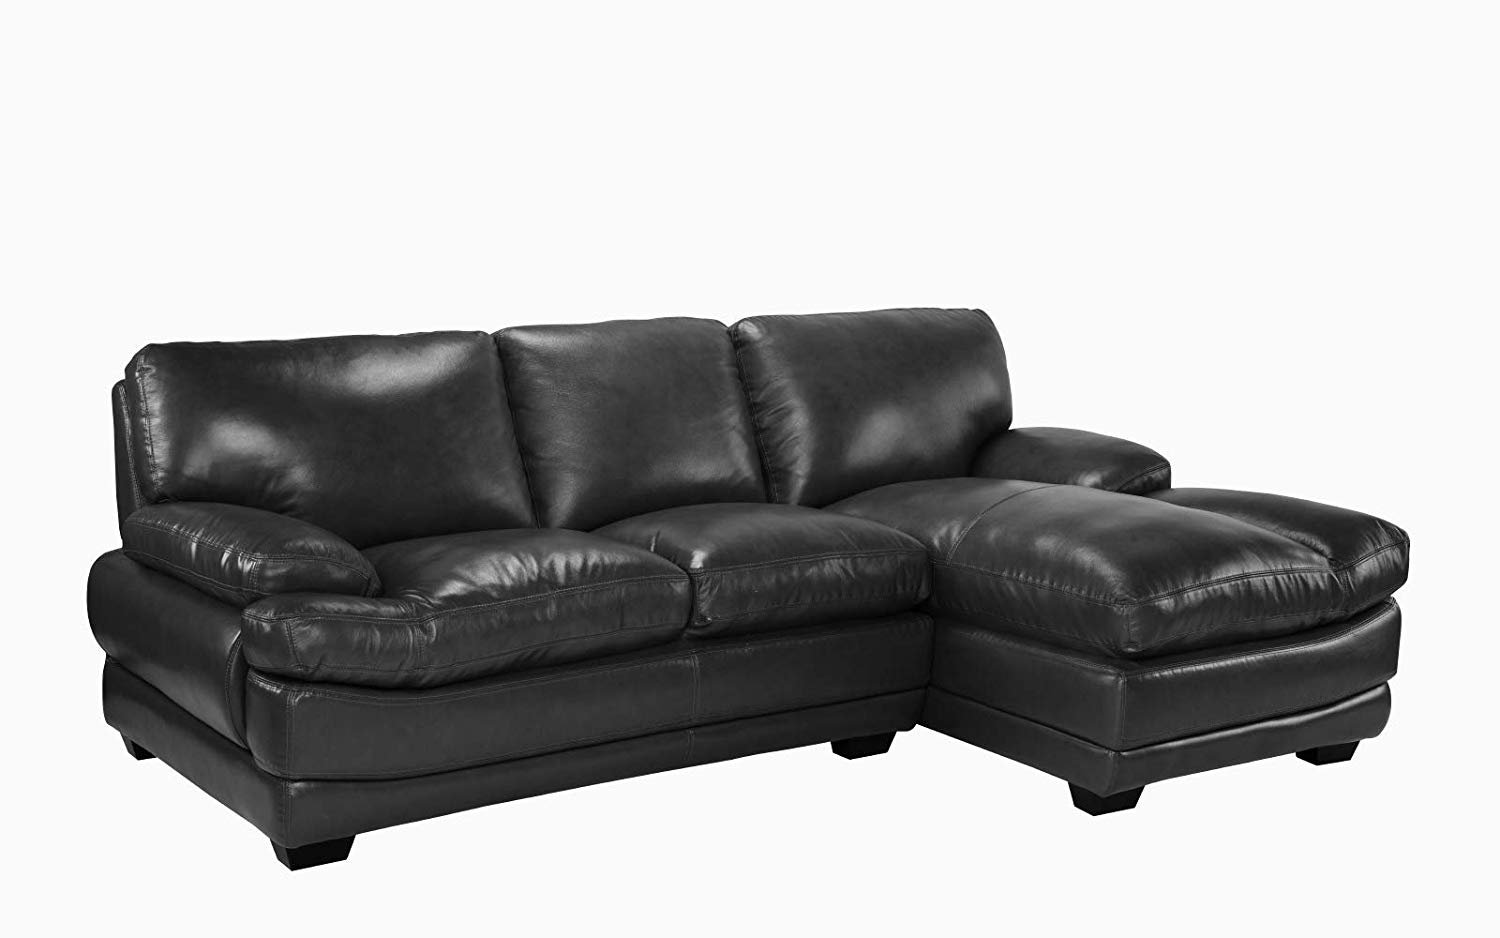 leather match sectional sofa with low frame right chaise black 662187615530 ebay. Black Bedroom Furniture Sets. Home Design Ideas